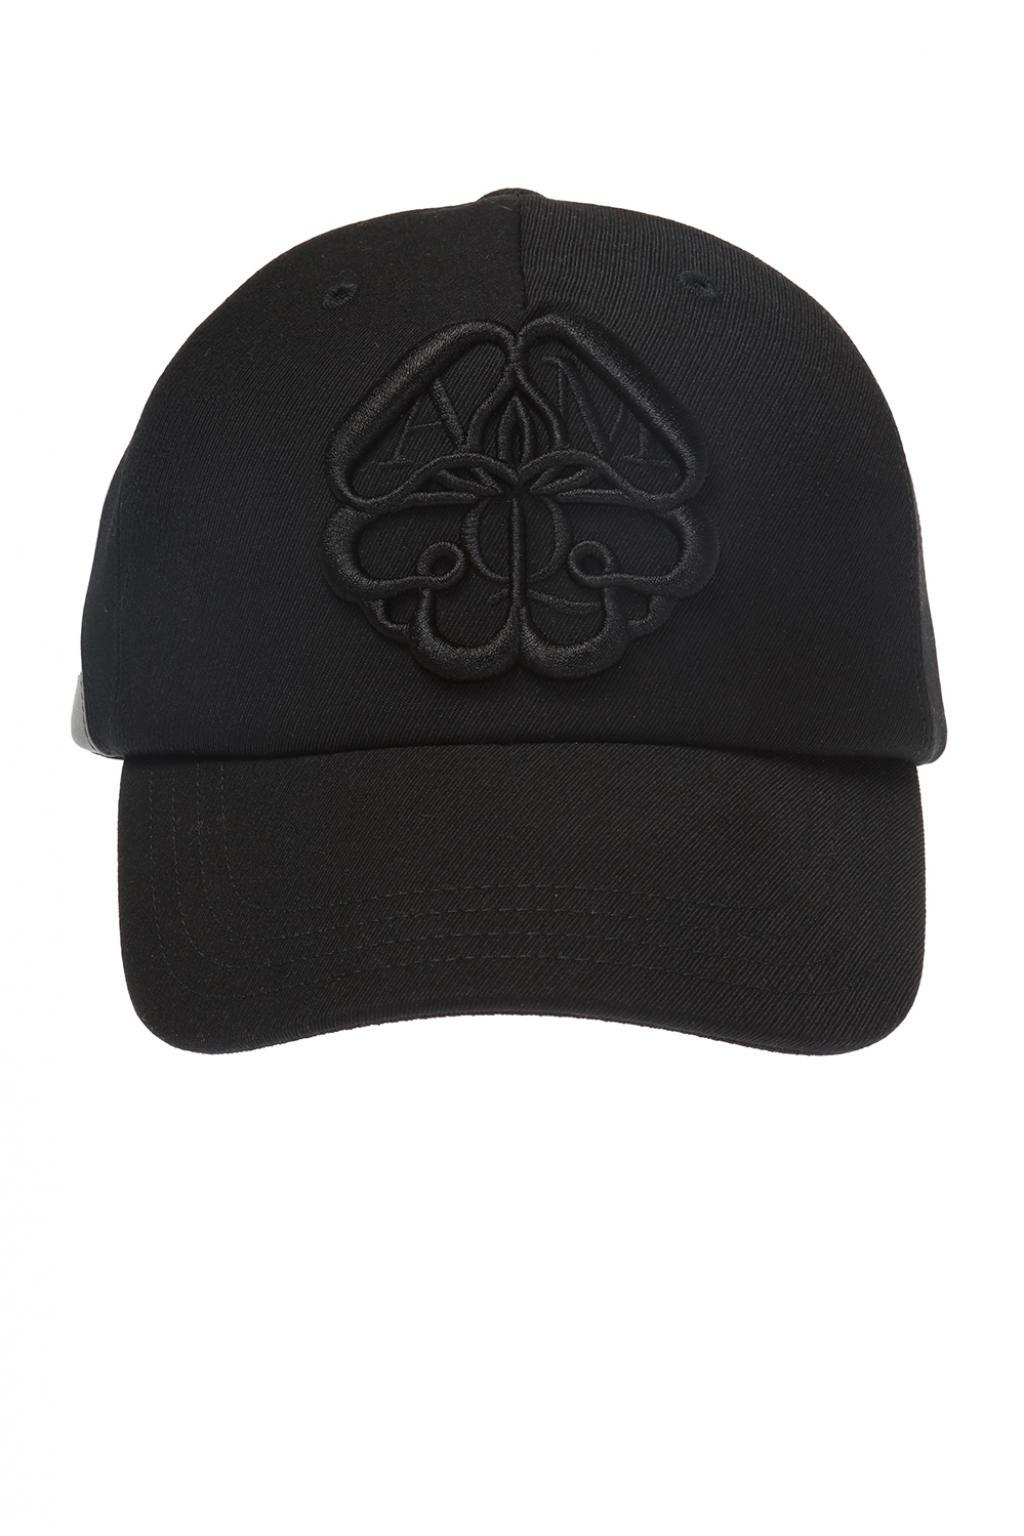 0ee75663d5a907 Alexander McQueen Embroidered Baseball Cap in Black for Men - Save ...